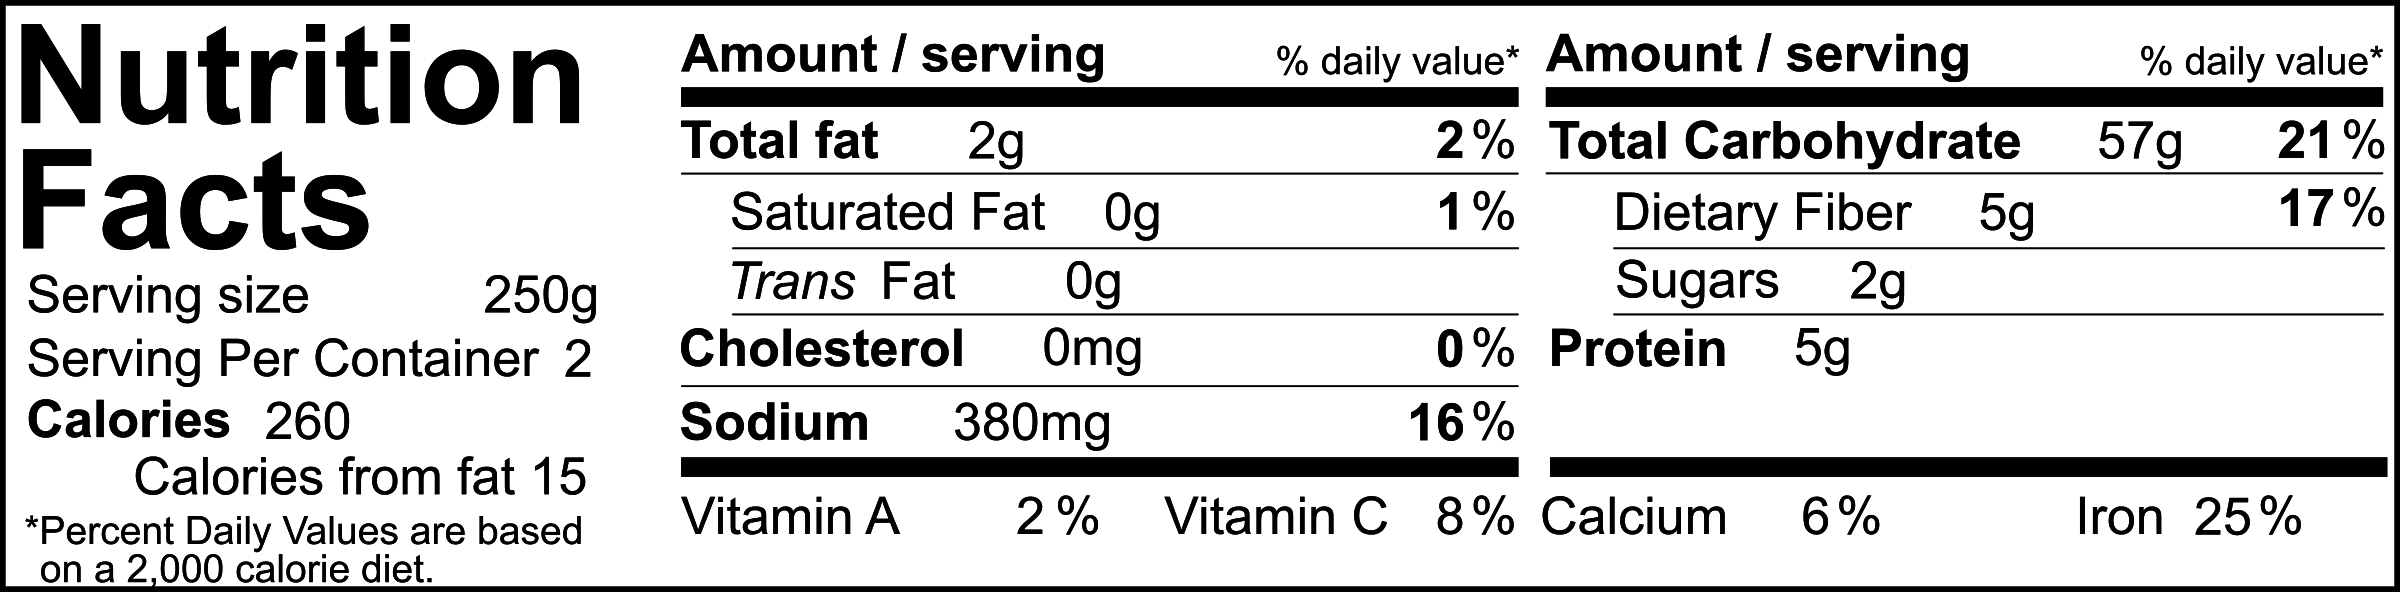 wgf-spicy-aloo-paratha-nutrition-facts-18jan2018.png